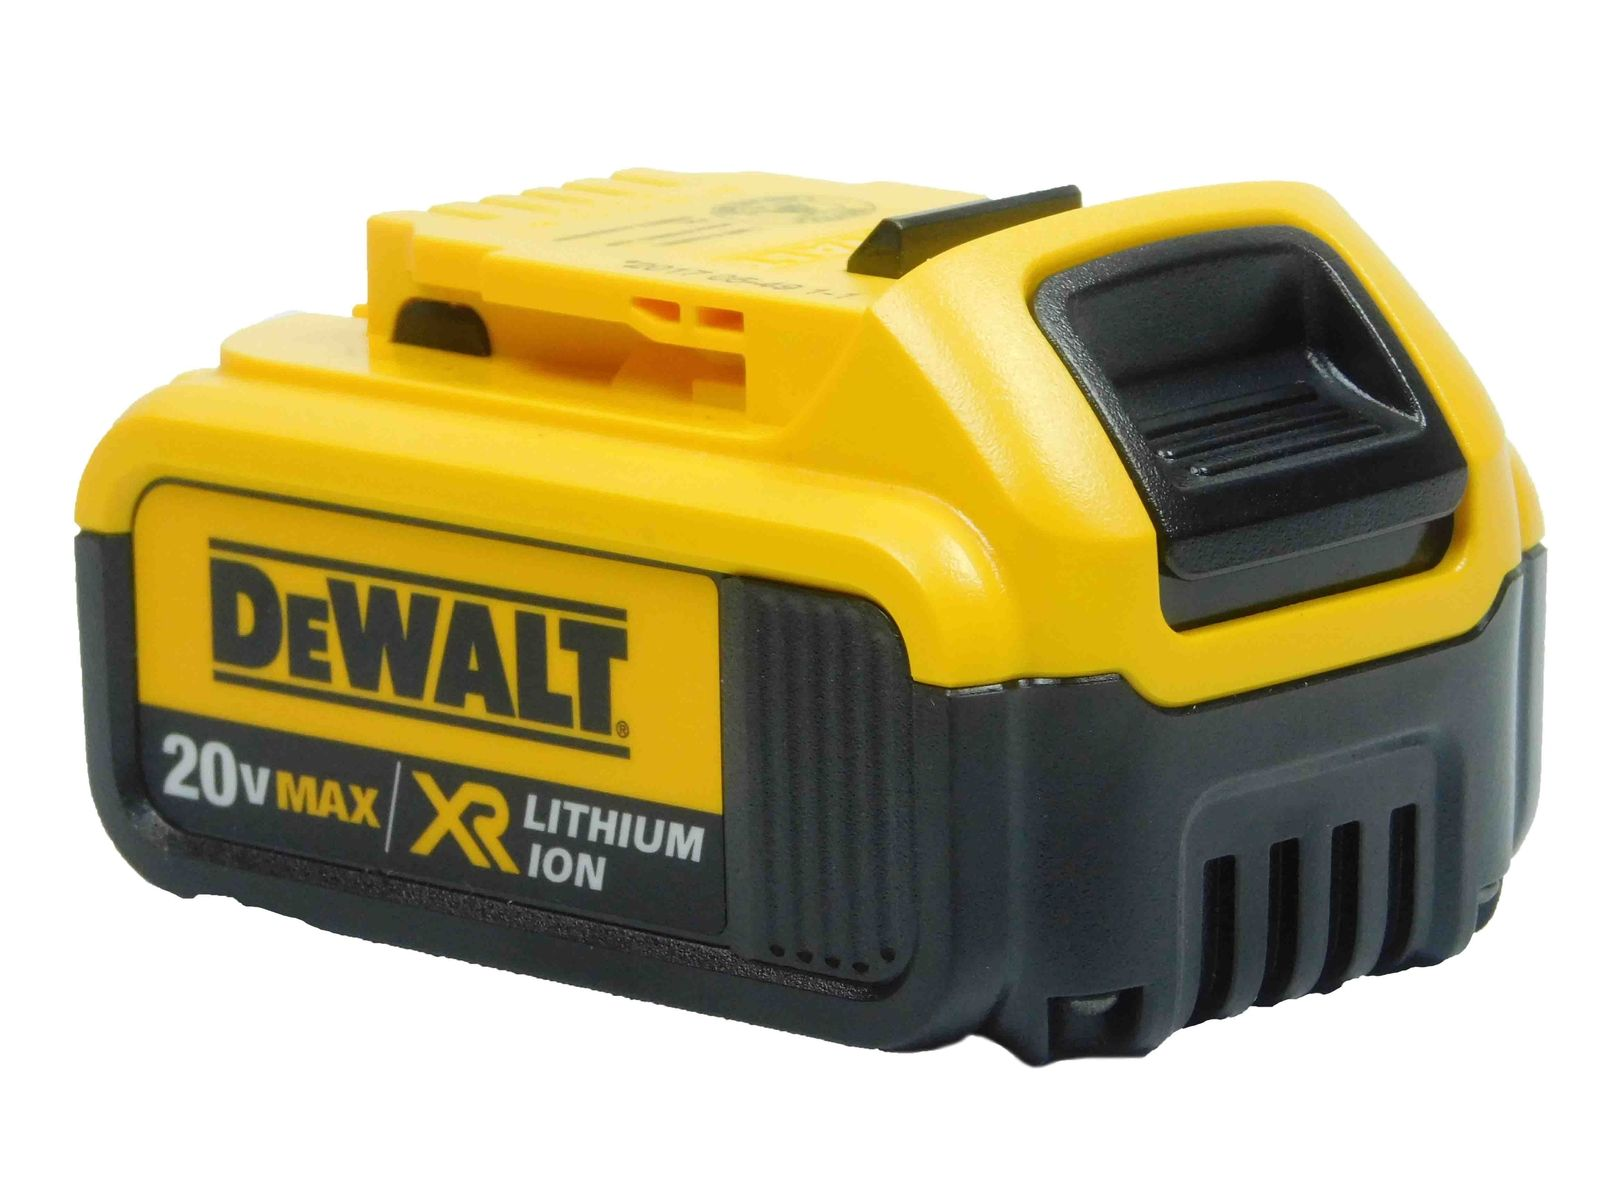 Dewalt-DCD796B-20V-Brushless-Hammer-Drill-DCB204-4-Ah-Battery-Pack-image-4